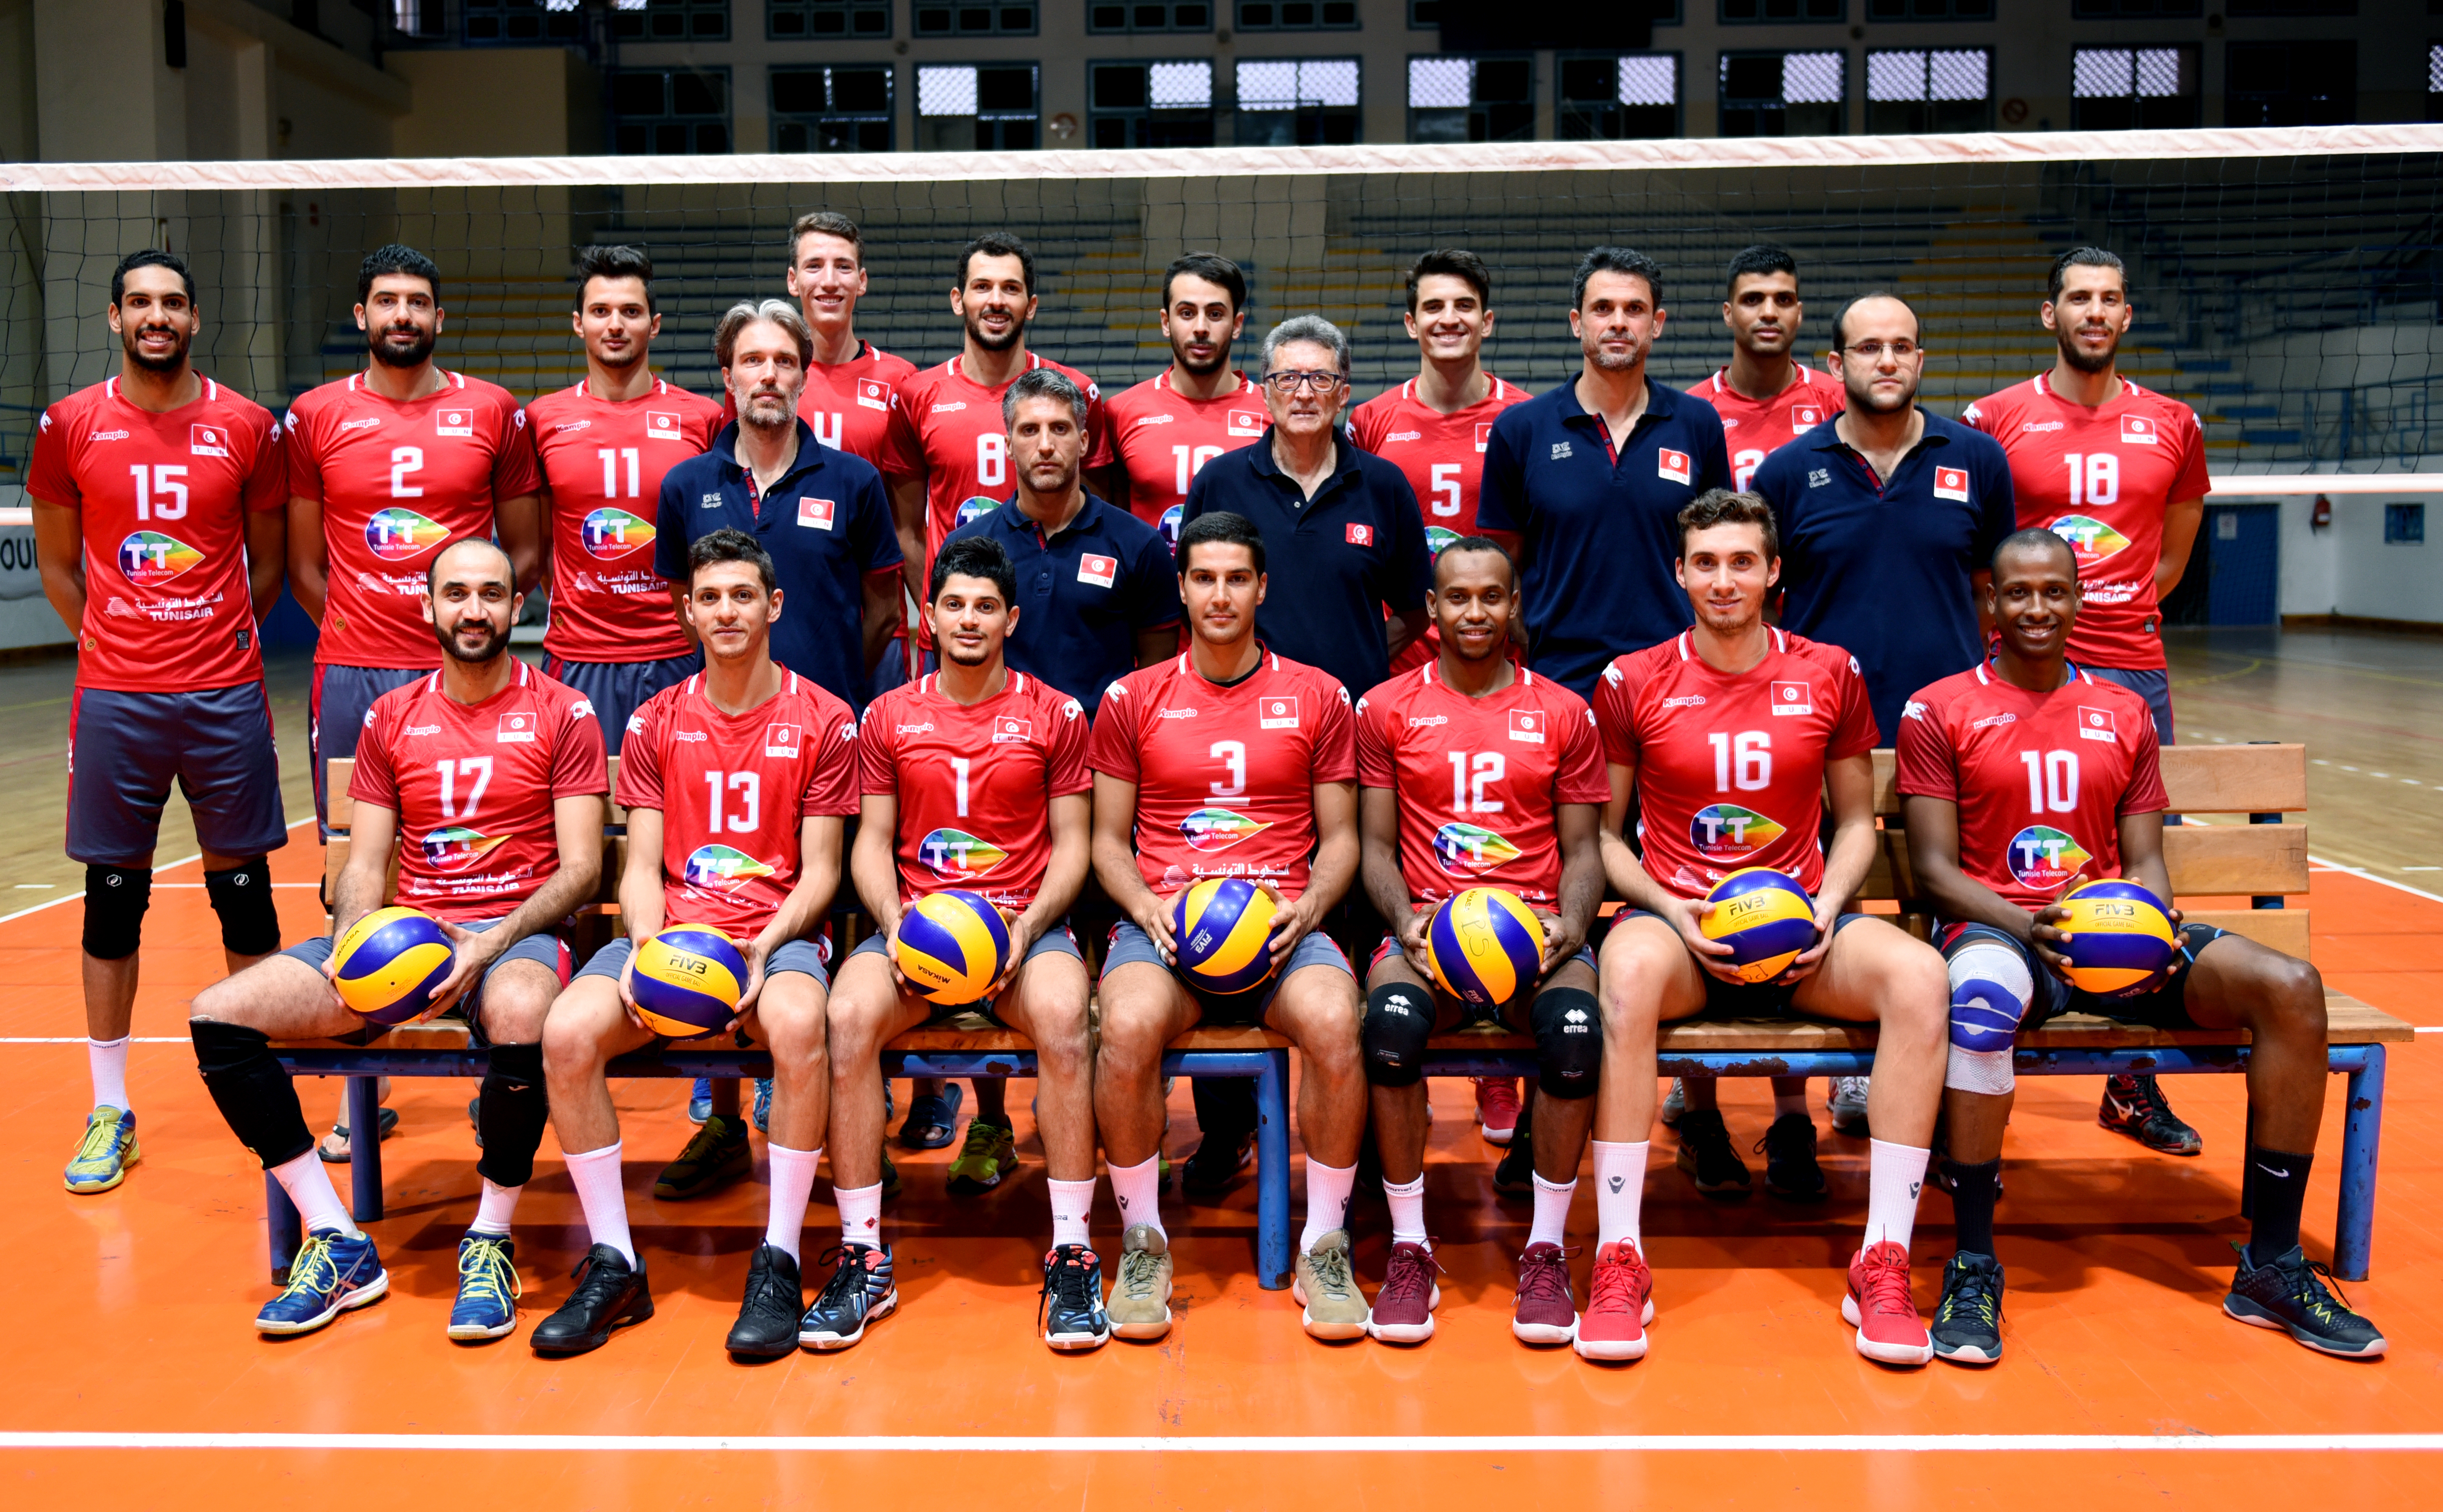 Overview Tunisia Fivb Volleyball Men S World Championship Italy And Bulgaria 2018